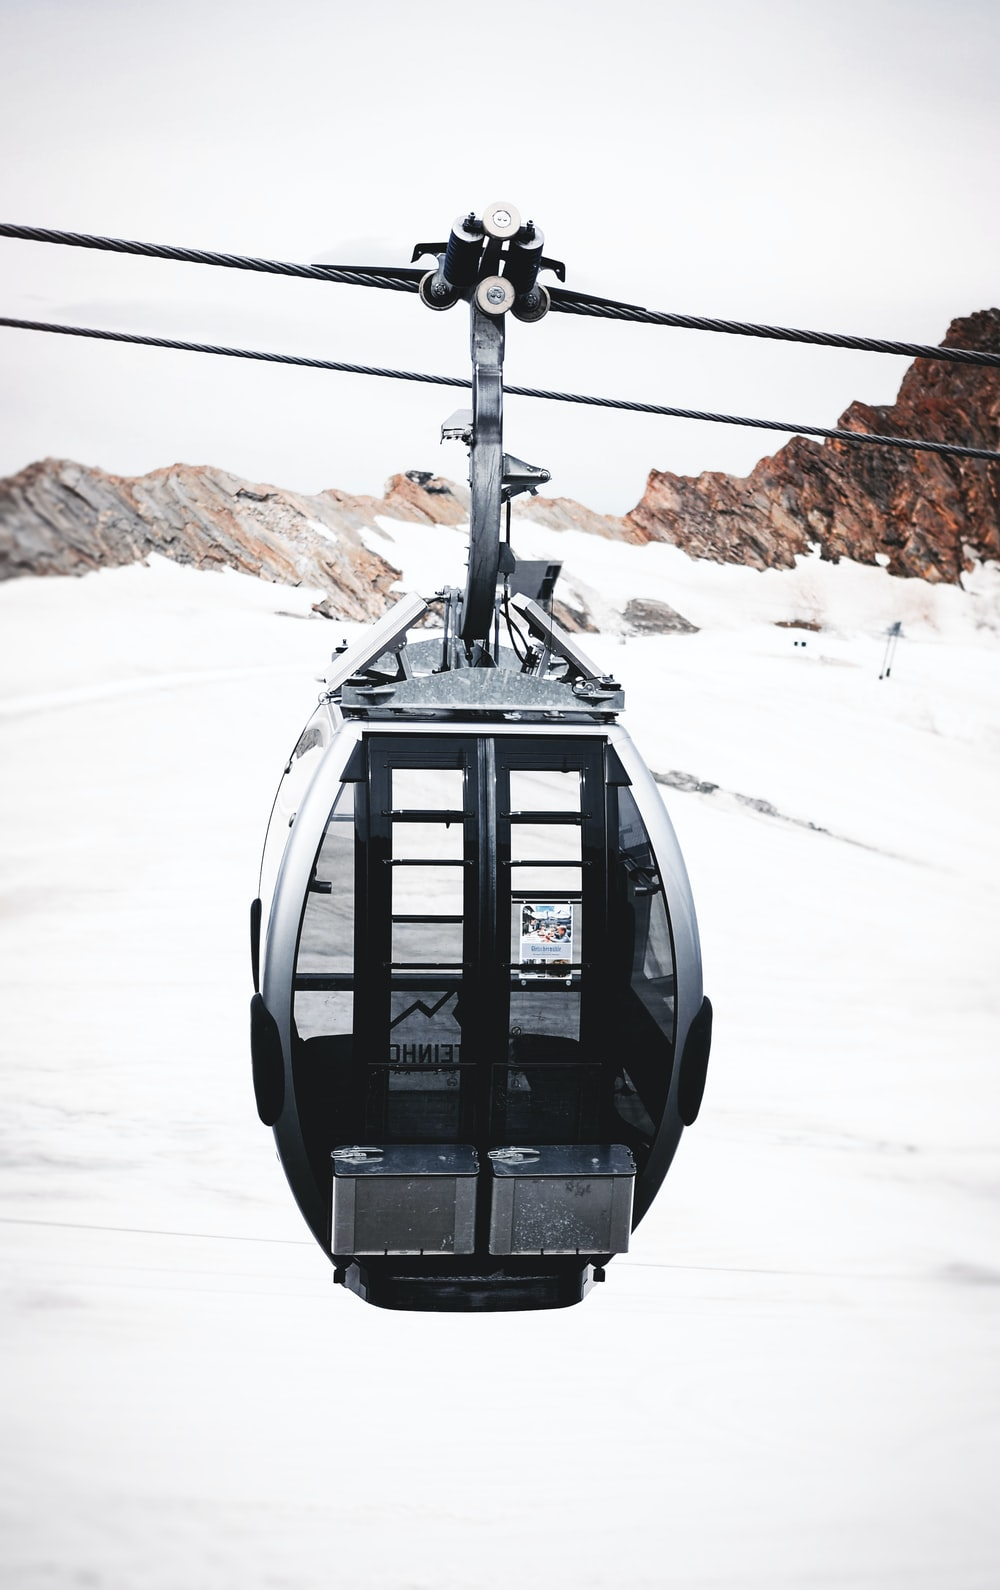 black cable car on snow covered ground during daytime